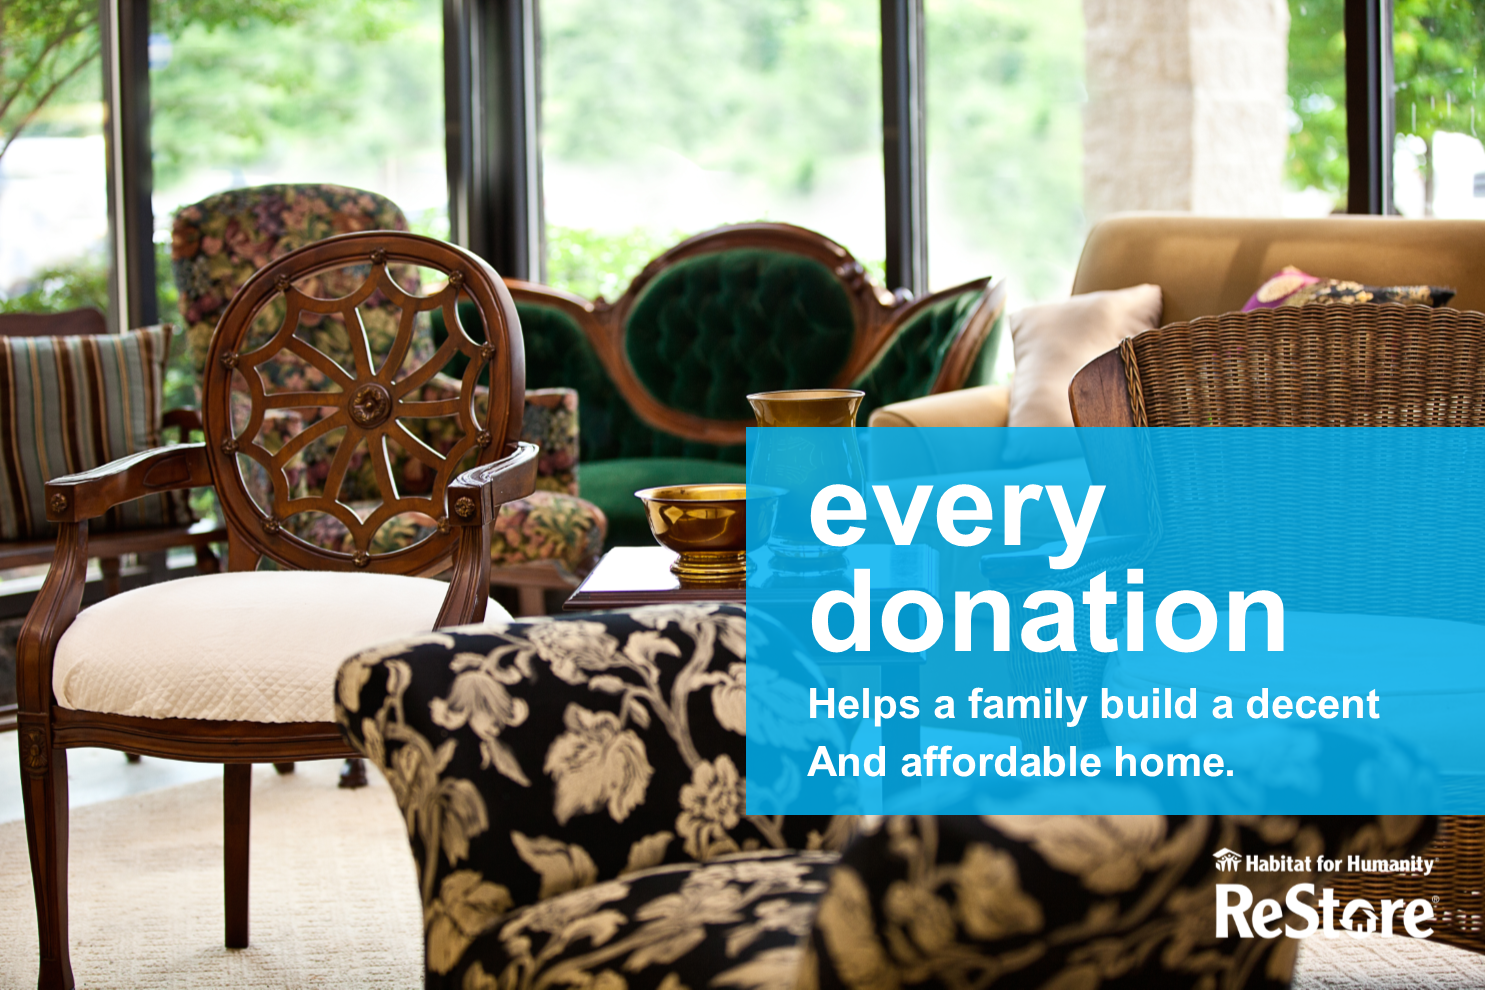 Donate to ReStore - Help fund the mission of Habitat for Humanity!Donate today